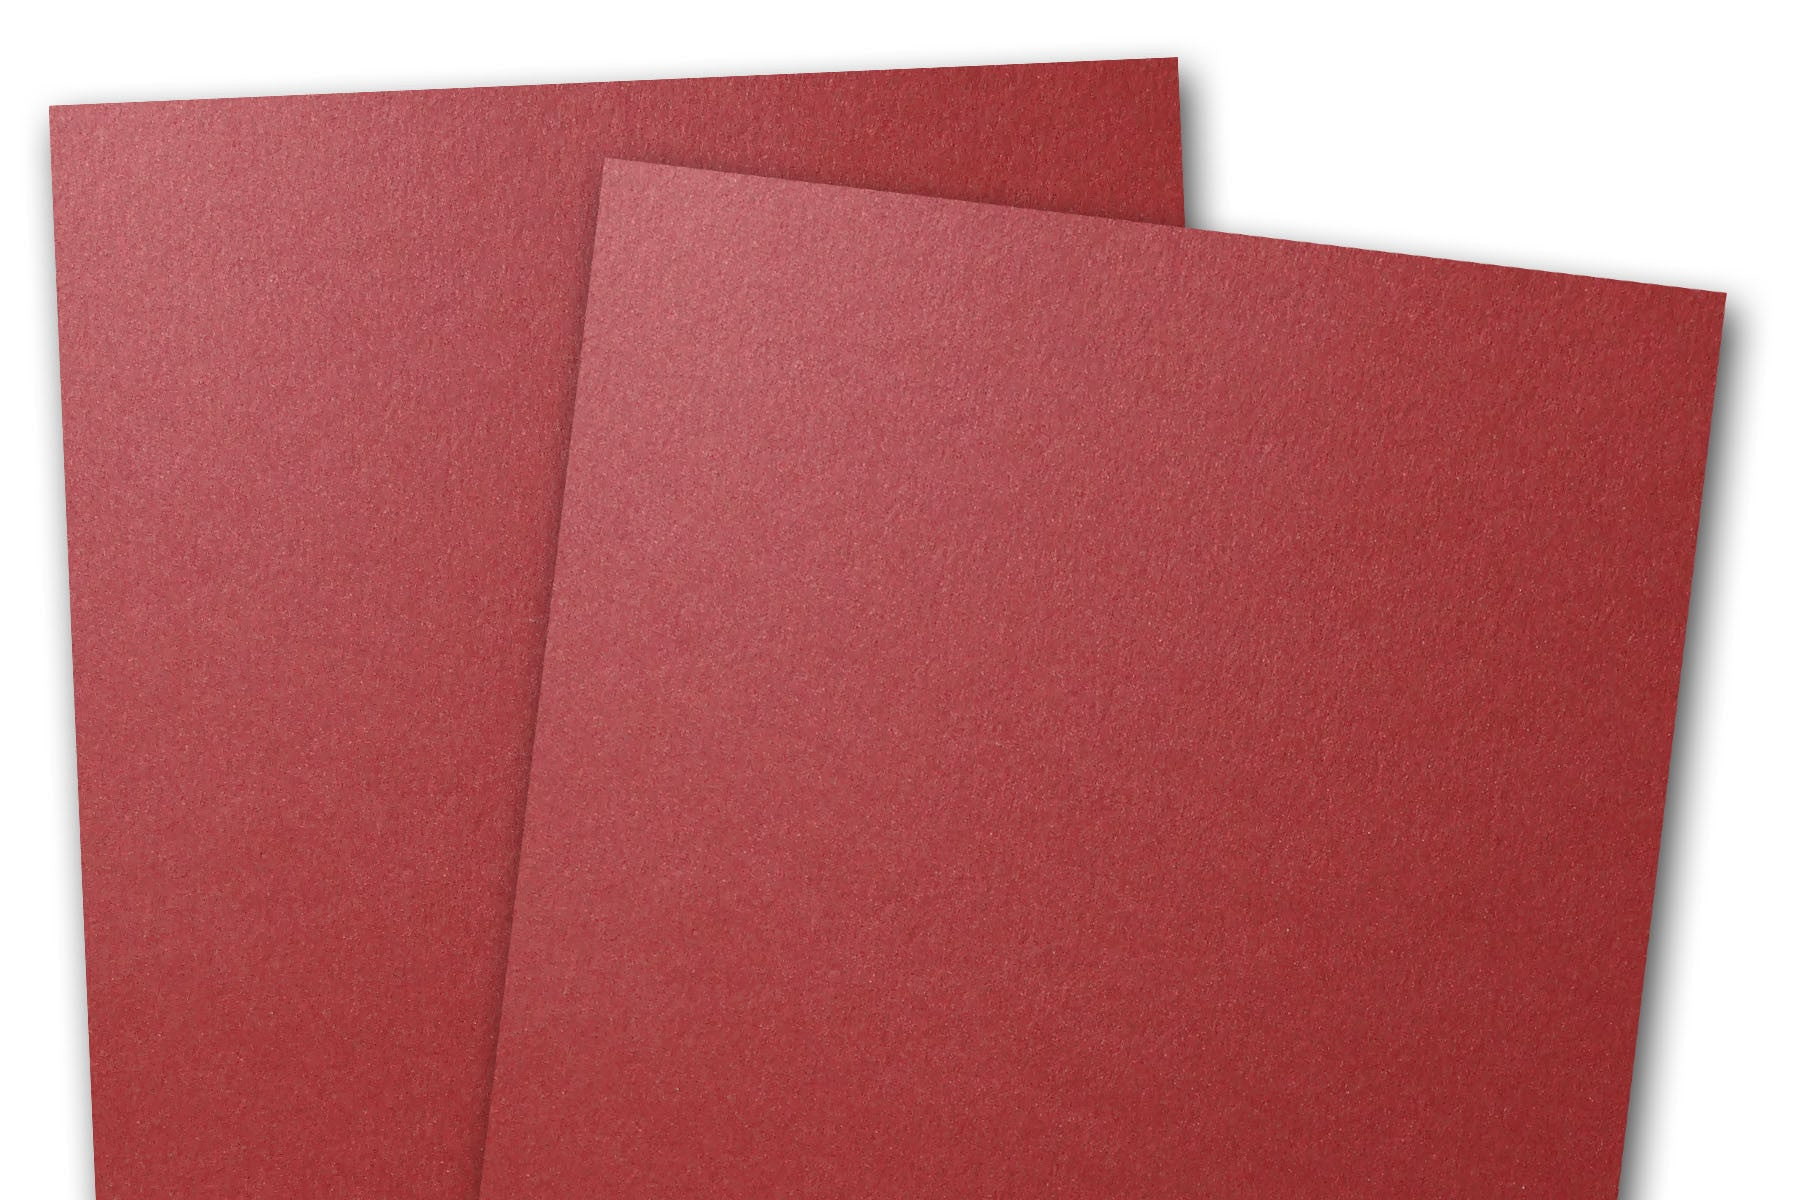 Curious Metallic Red Lacquer 85x11 Cardstock 25 Pk